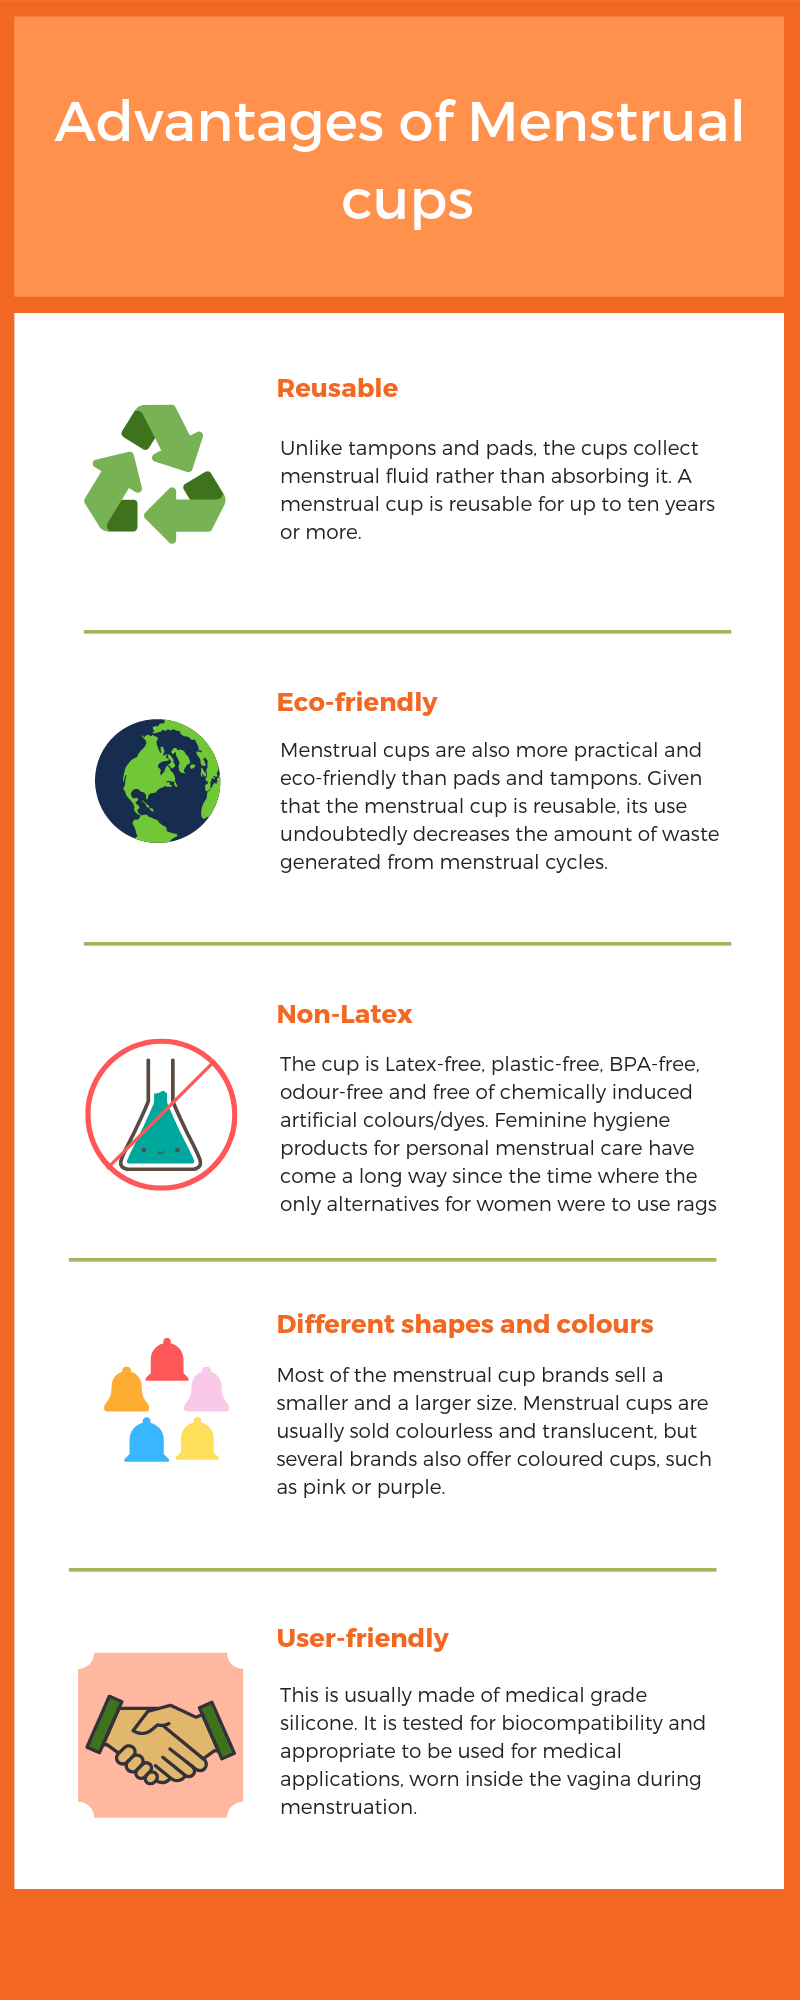 Infographic explaining the advantages of menstrual cups